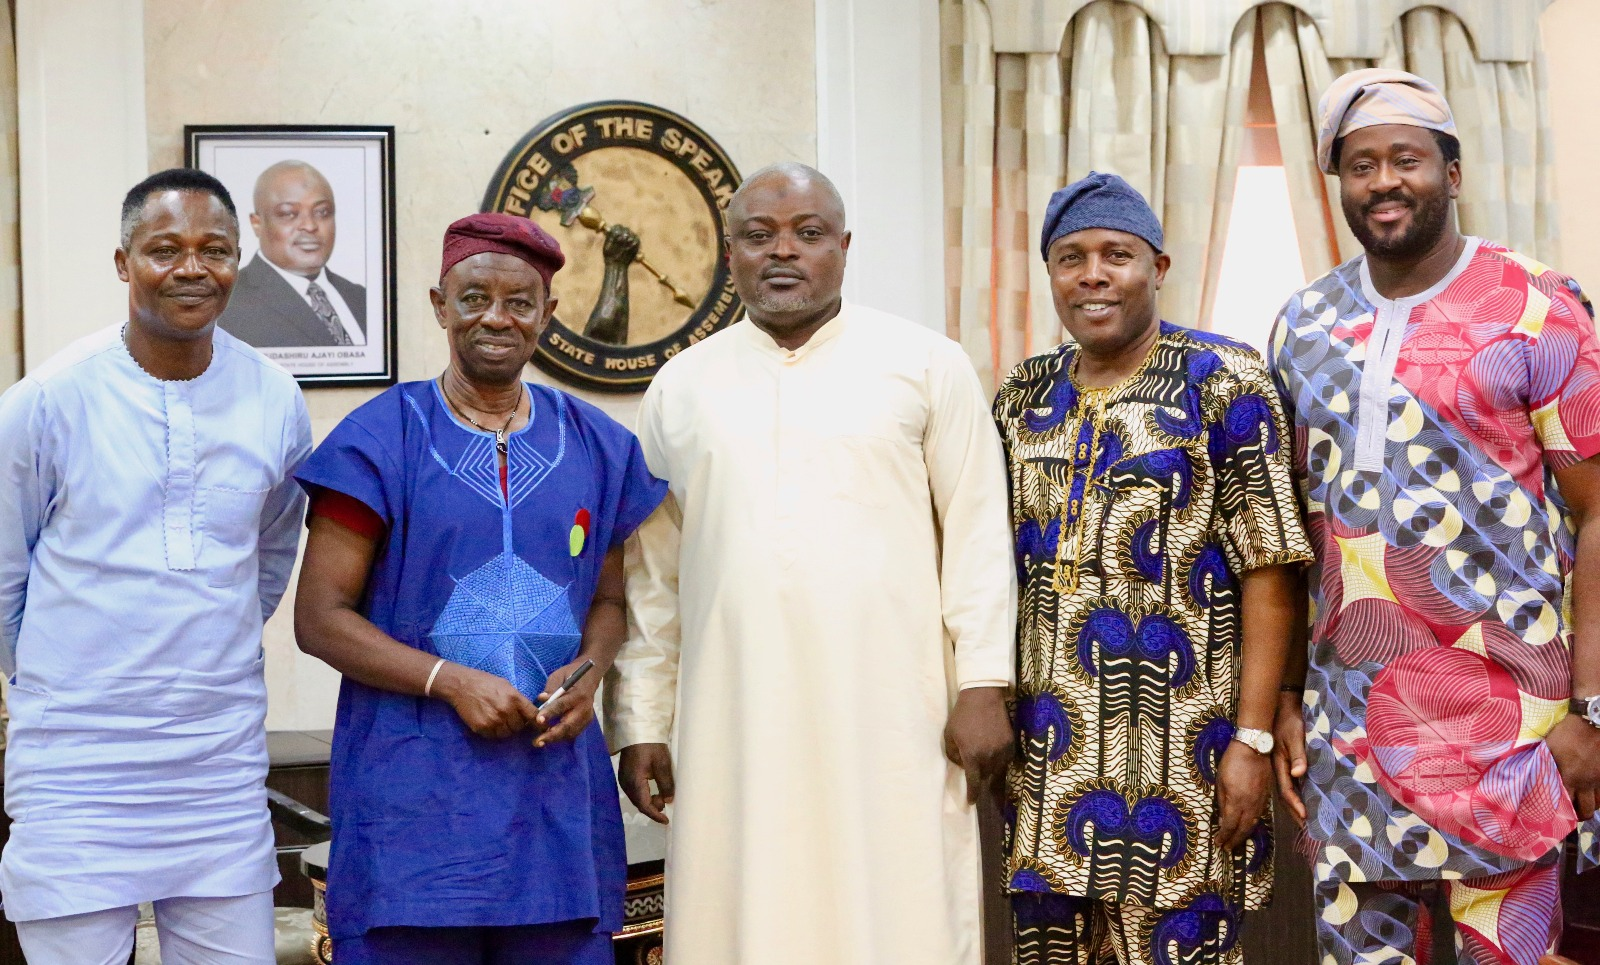 Member, Lagos State House of Assembly (LAHA), Hon. Rotimi Olowo; Nollywood filmmaker/producer, Mr Tunde Kelani; Speaker, LAHA, Rt. Hon. Mudashiru Obasa; members LAHA, Hon. Lanre Ogunyemi; and Hon. Desmond Elliott Olusola during Kelani's visit to the Speaker in Lagos on Friday.